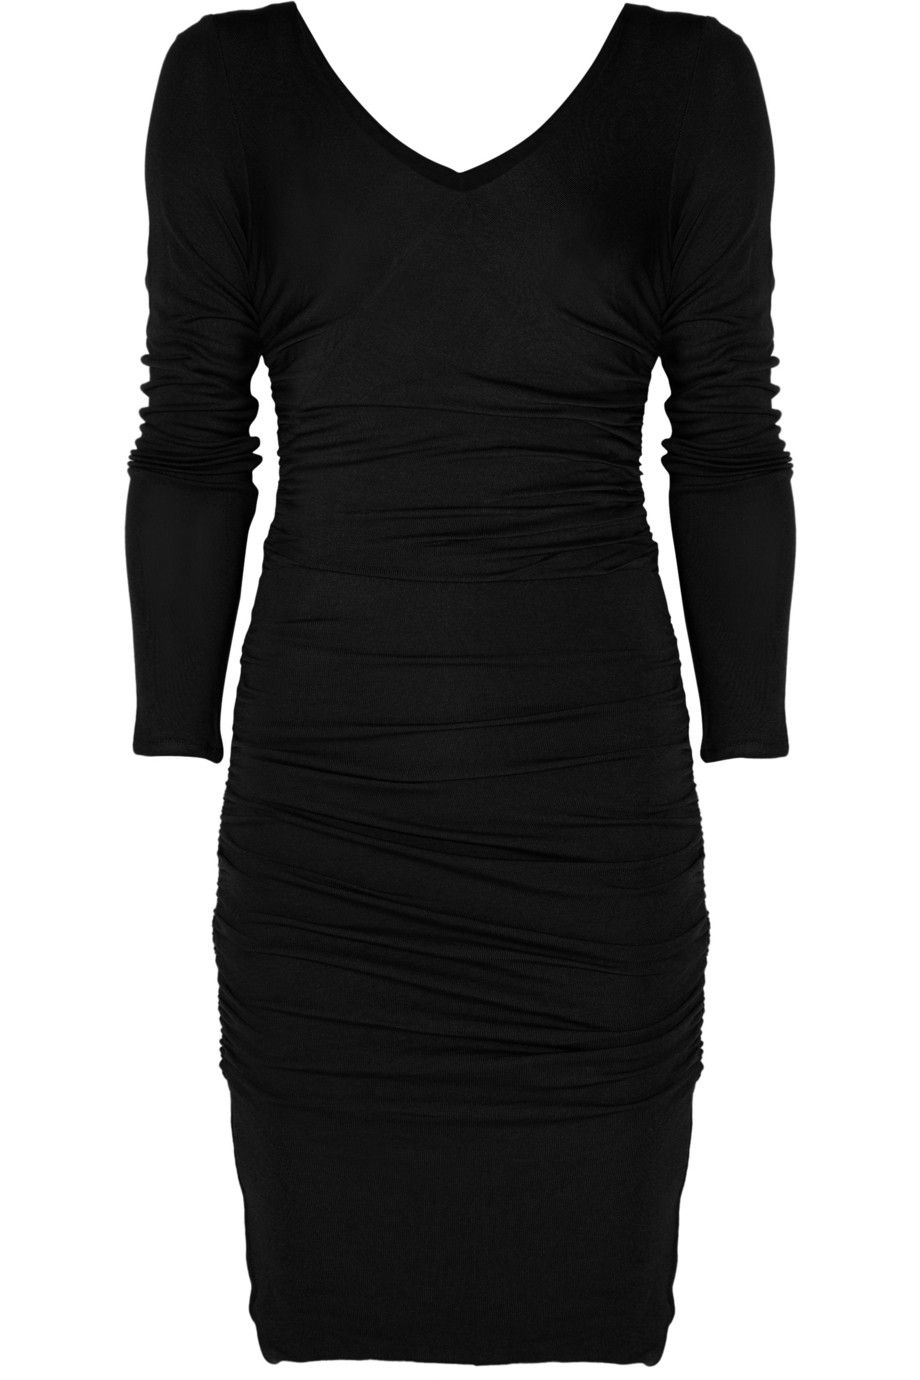 Ce me london black dress jersey perfect with great necklace